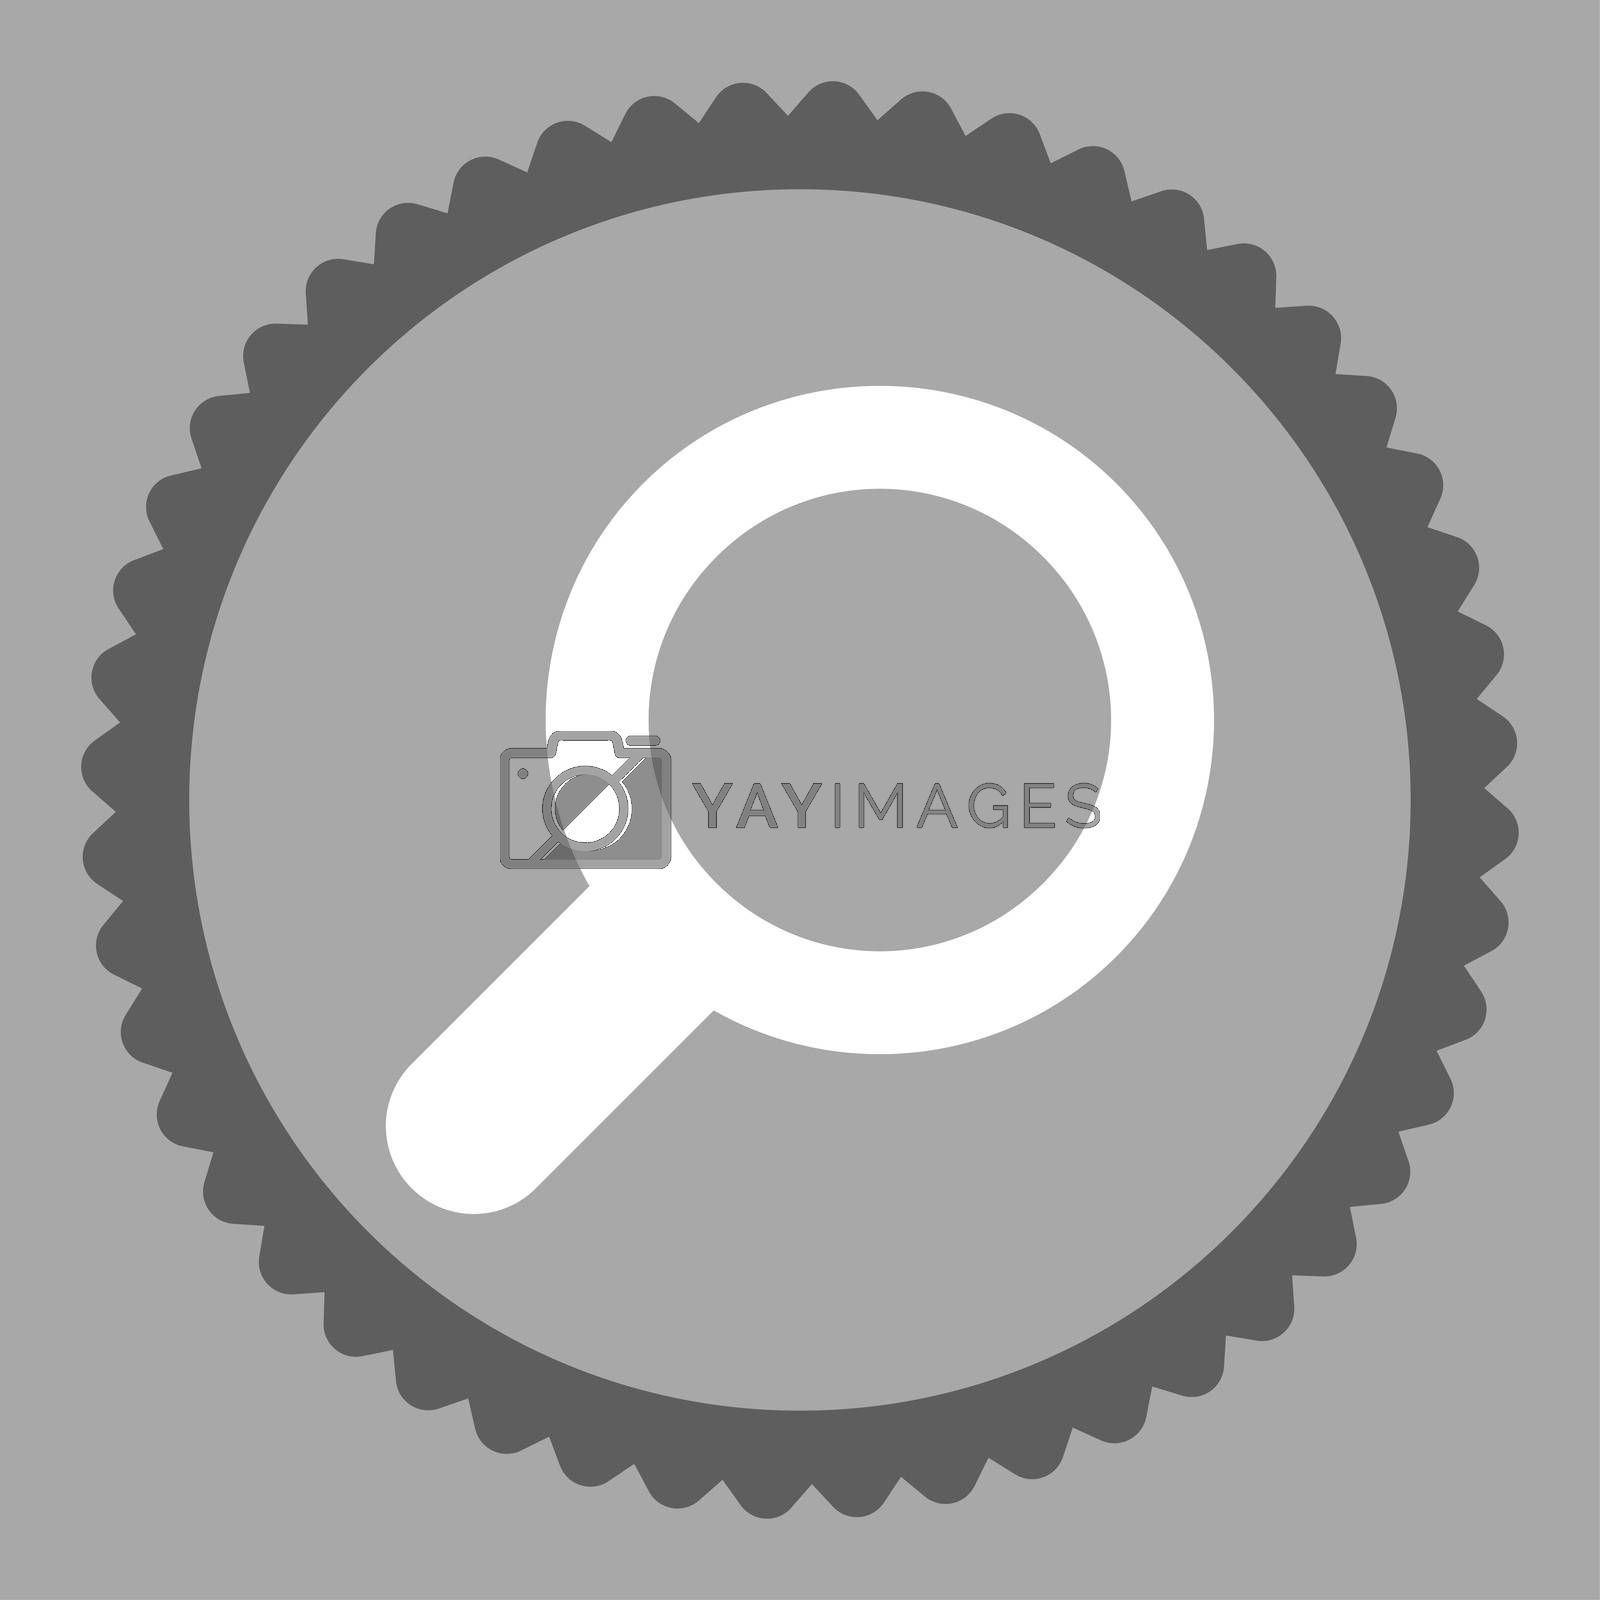 View flat dark gray and white colors round stamp icon by Aha-Soft